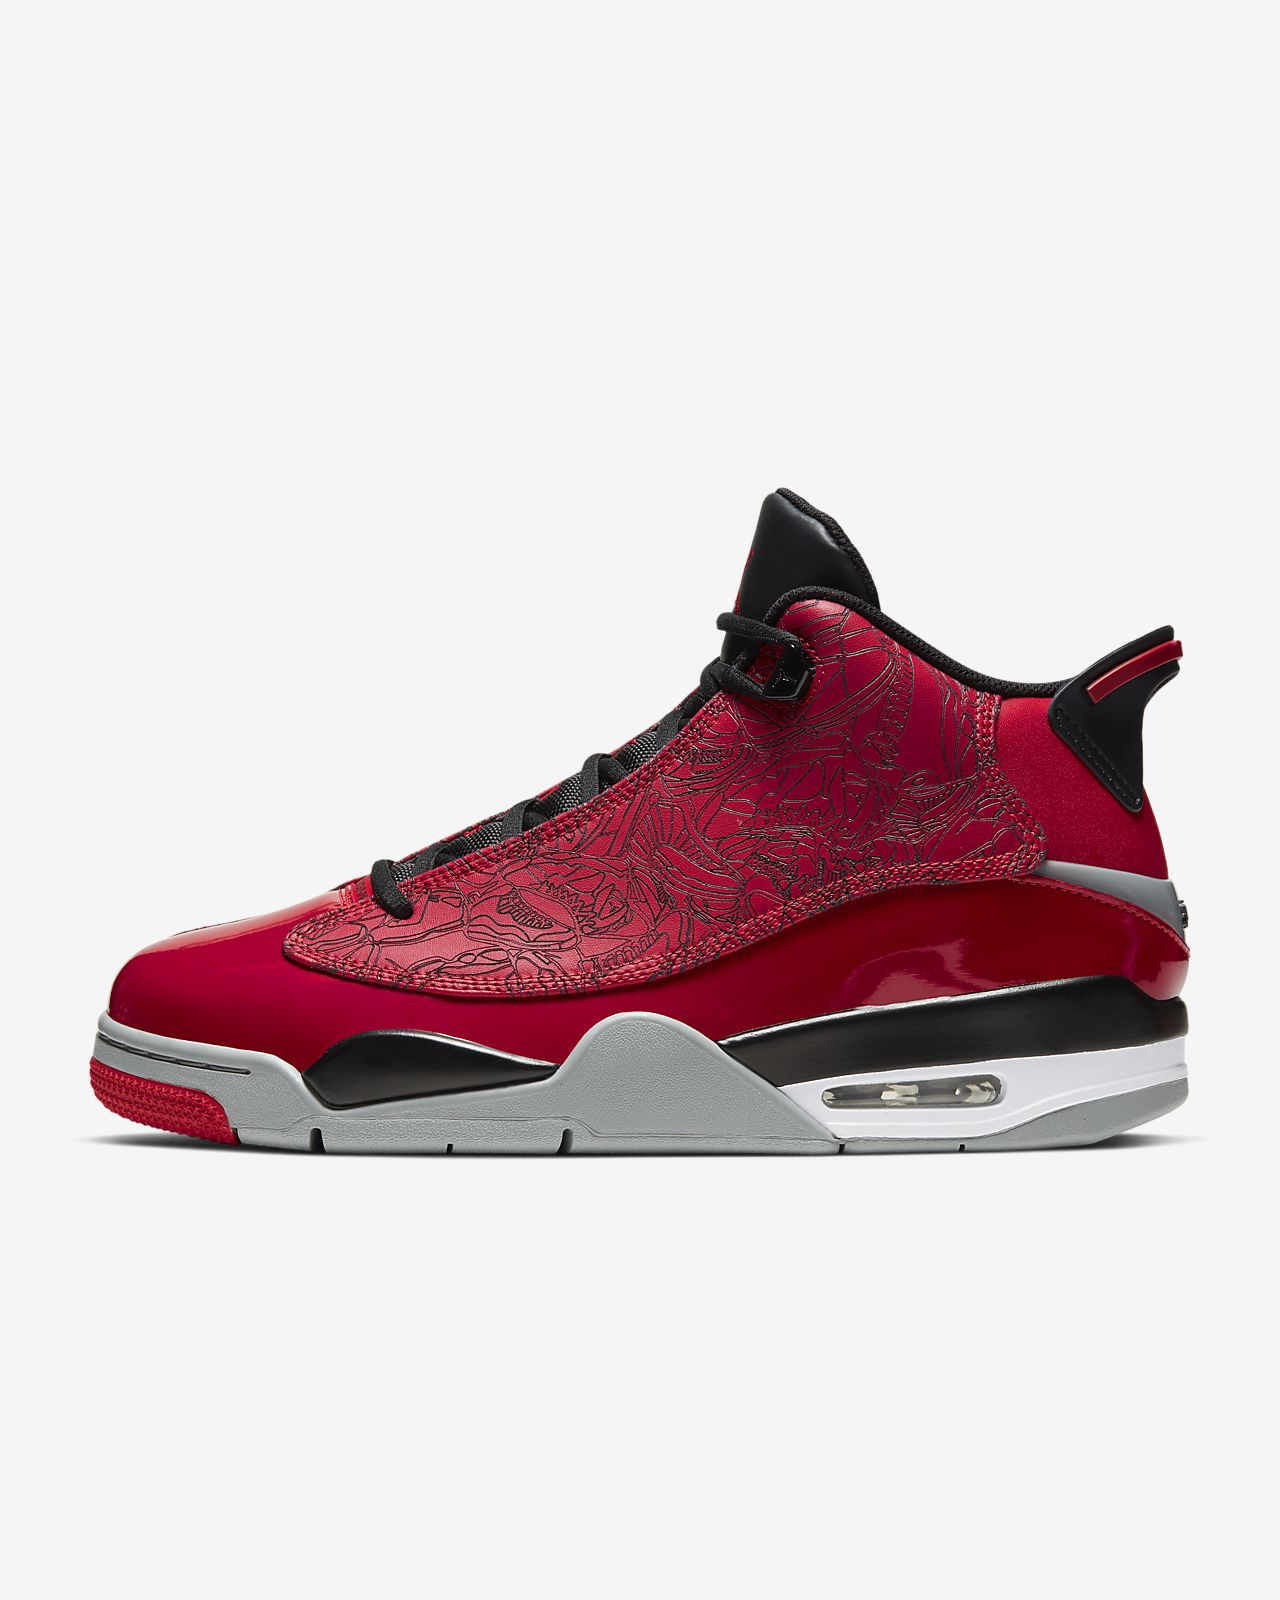 jordan rosse uomo online shopping for women men kids fashion lifestyle free delivery returns vikram thermo